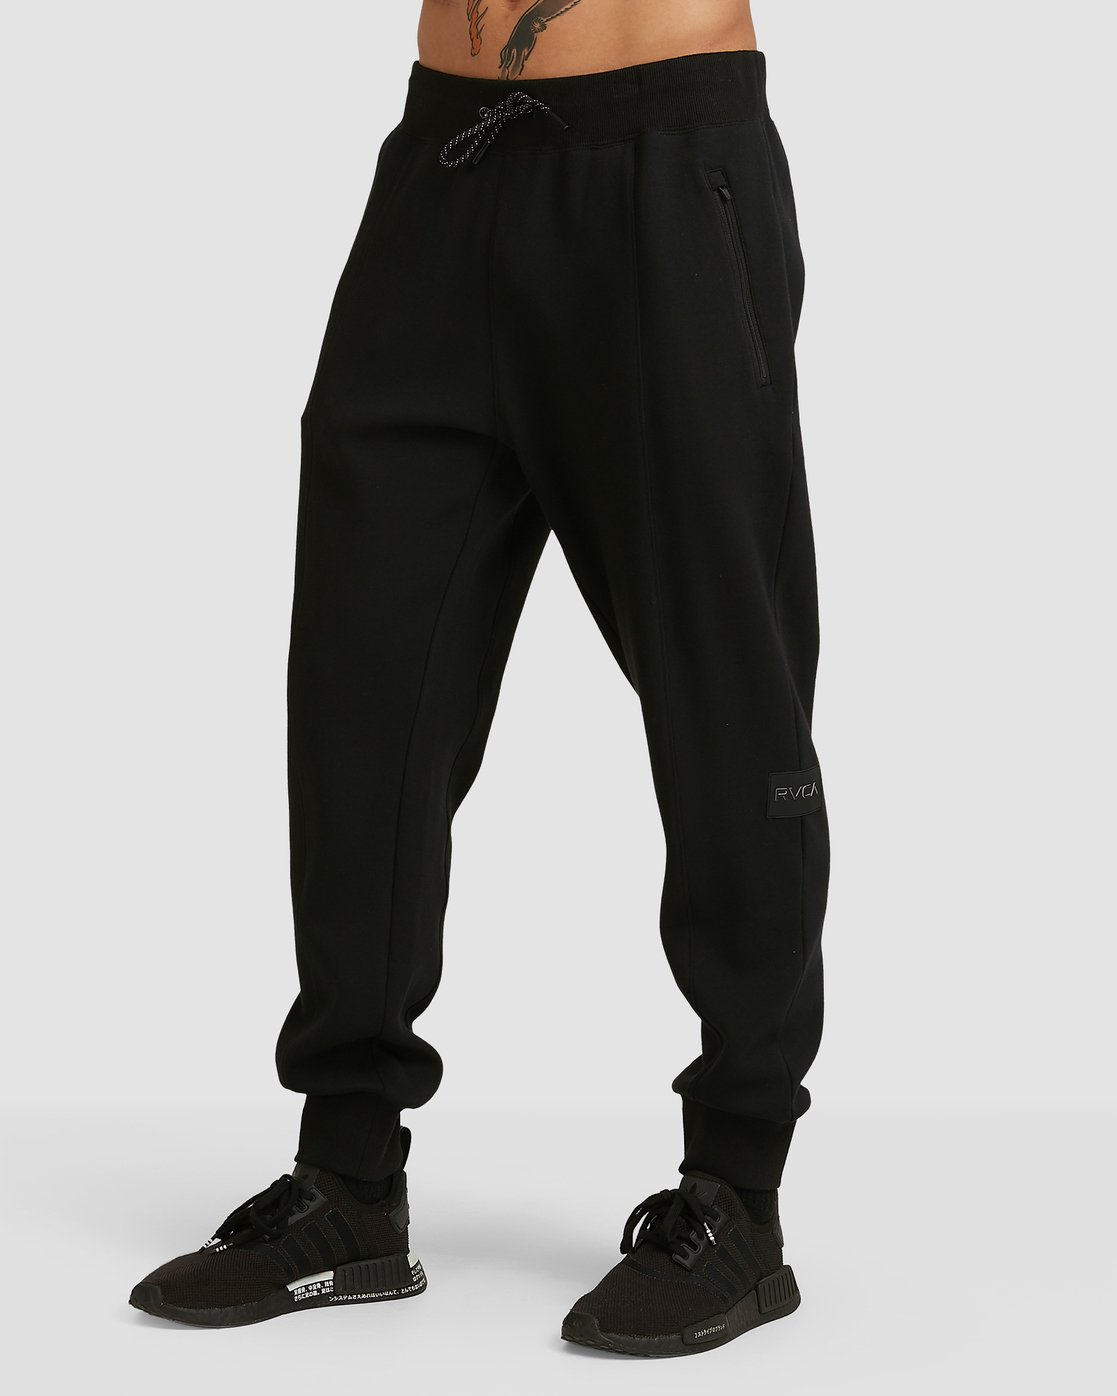 5 SPORT TECH SWEATPANT Black R305271 RVCA